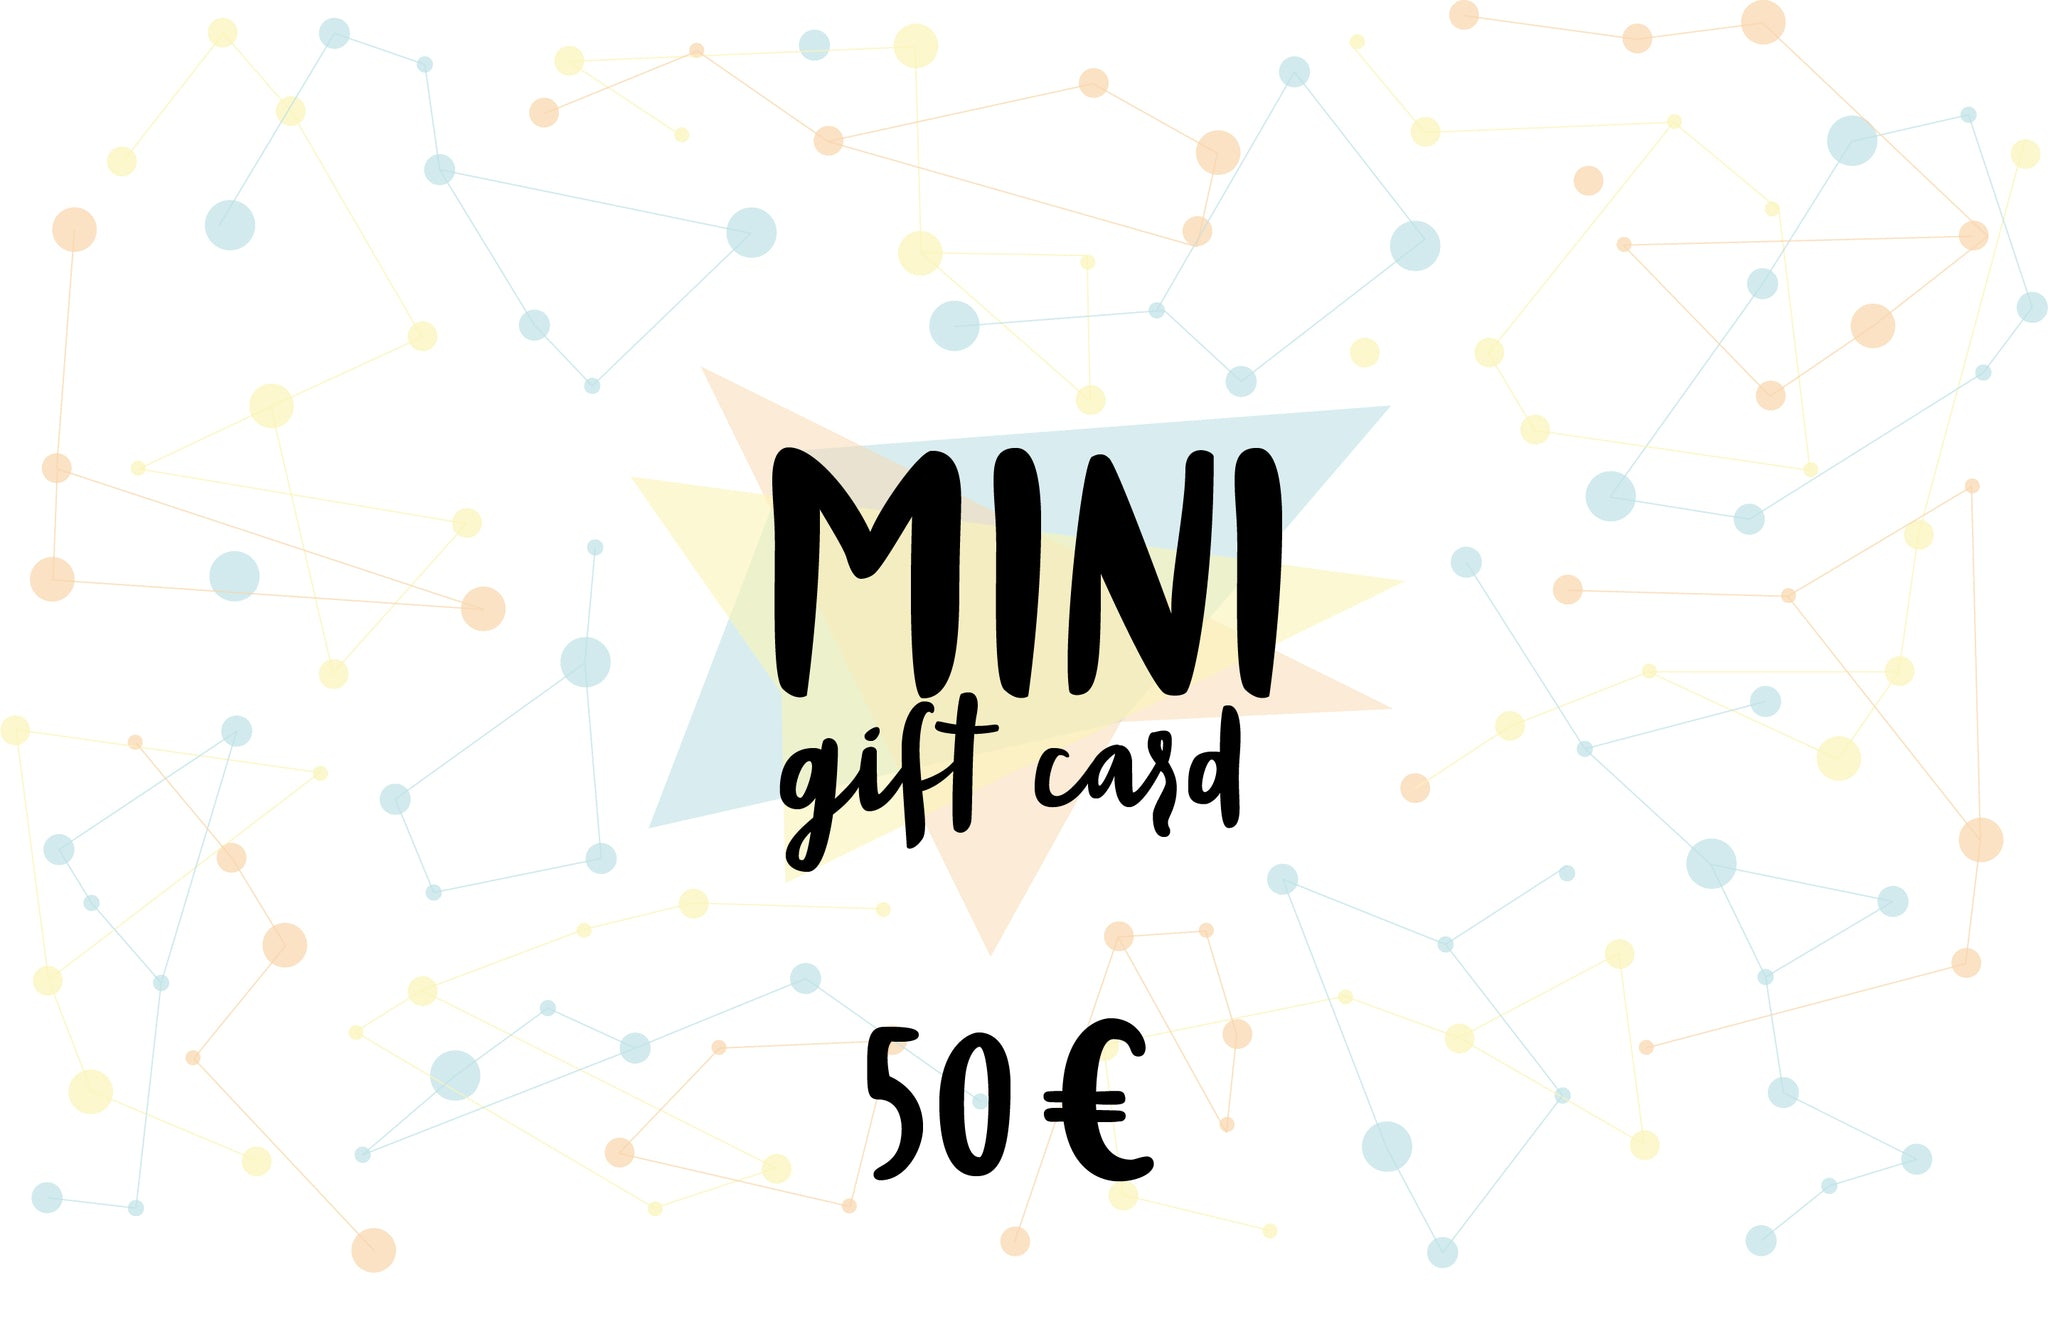 MINI Gift card, value of 50 euro